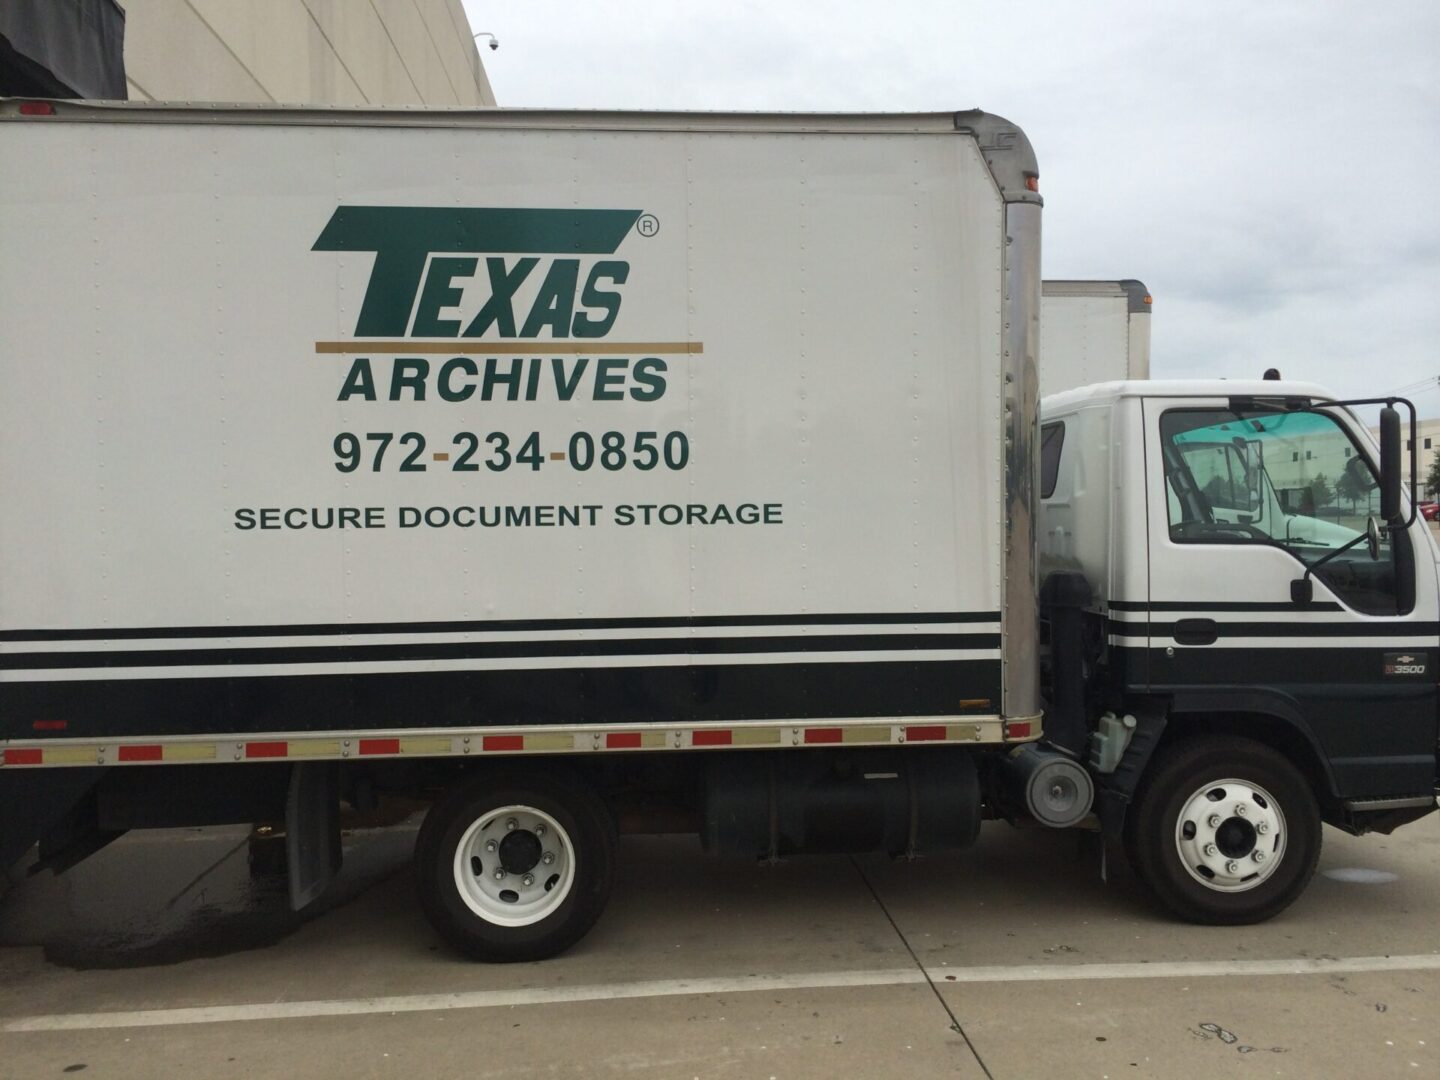 Texas Archives